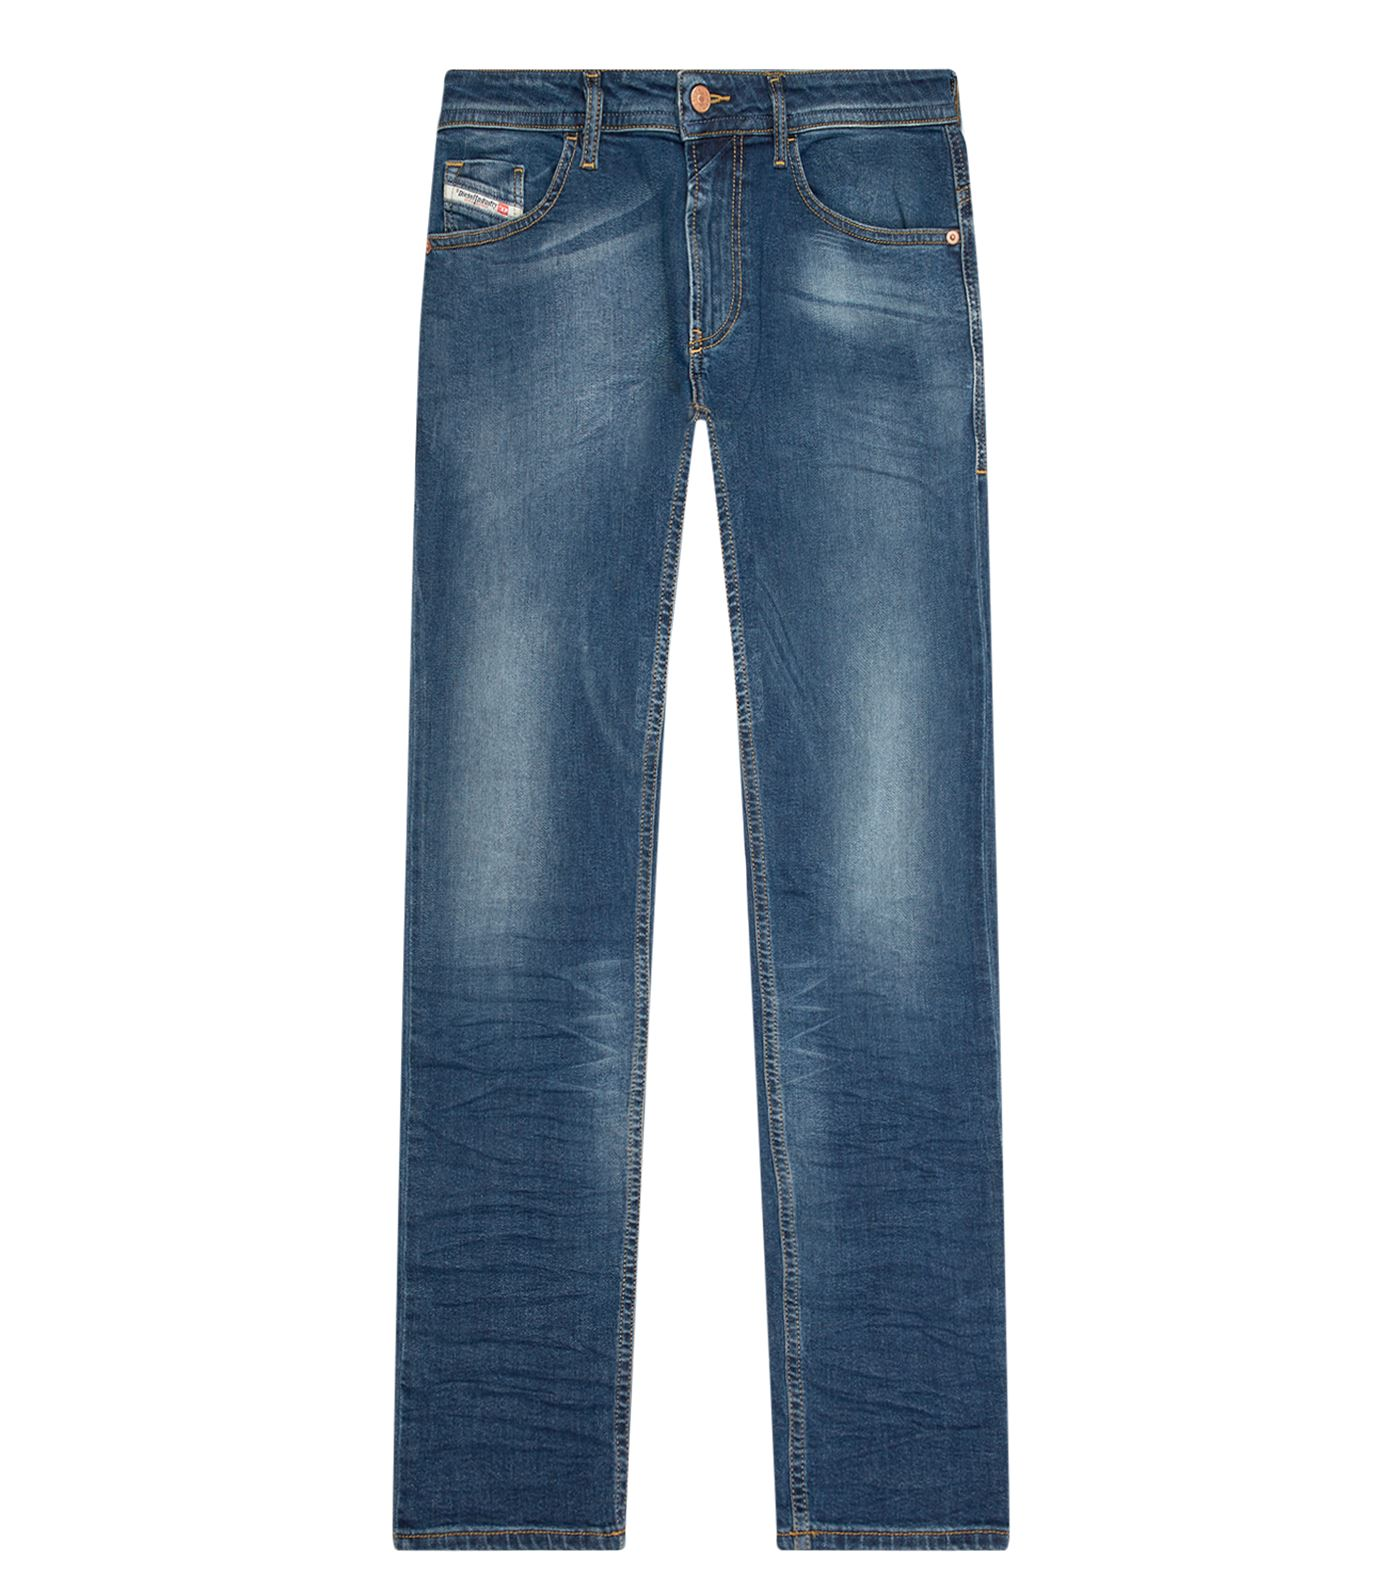 Diesel - Infuse your casual repertoire with the cool styling's of Diesel's Thommer jeans. Imagined i